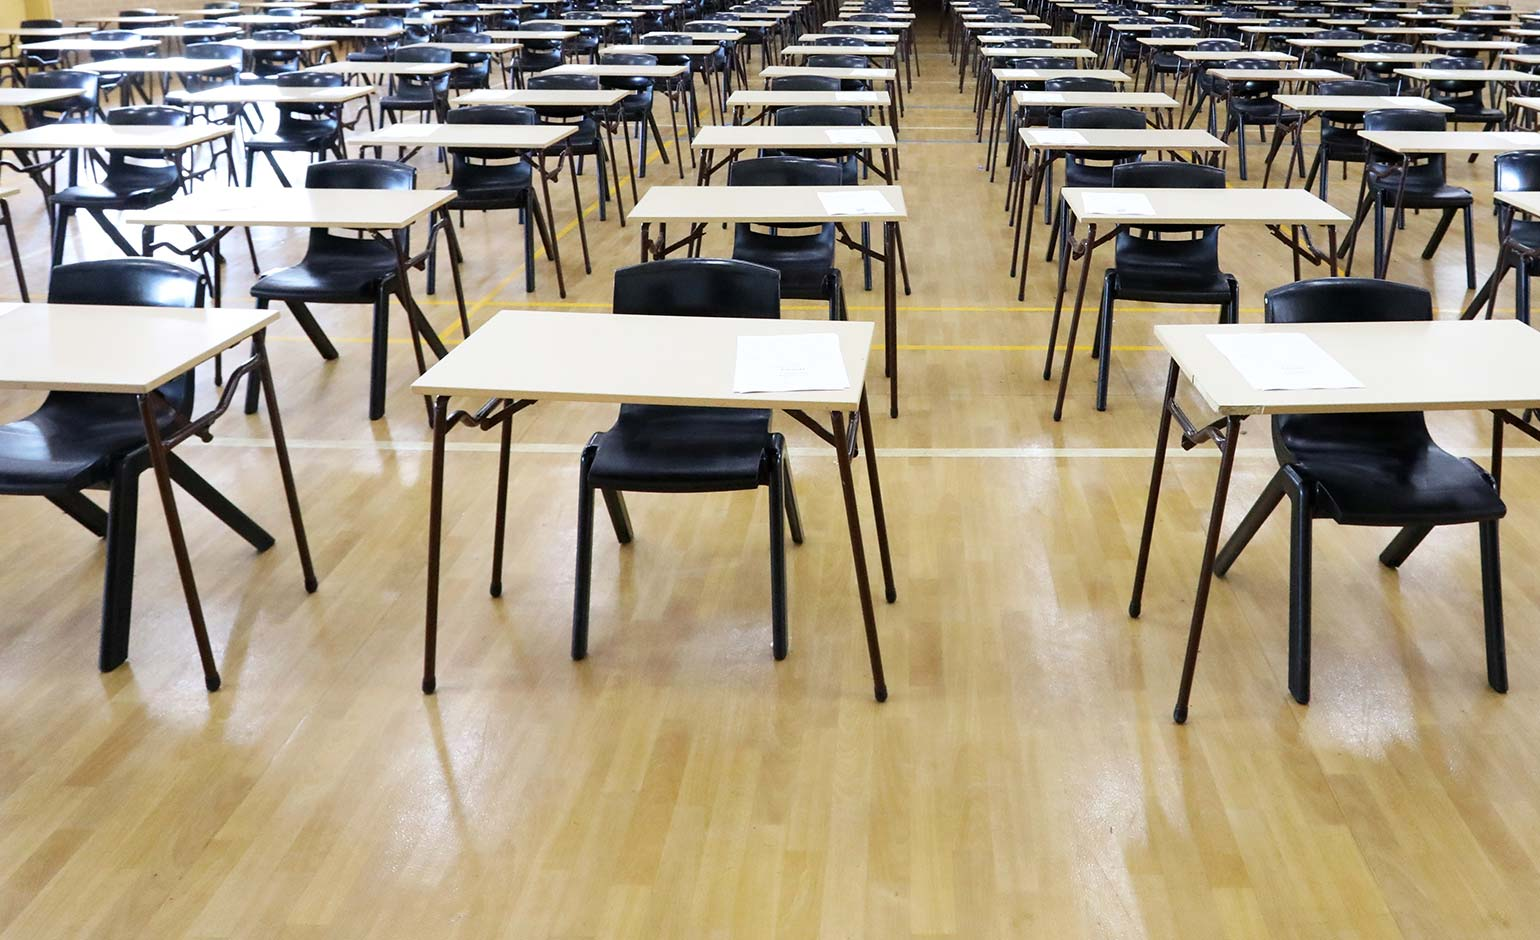 Advice being offered for concerned students ahead of upcoming exam results